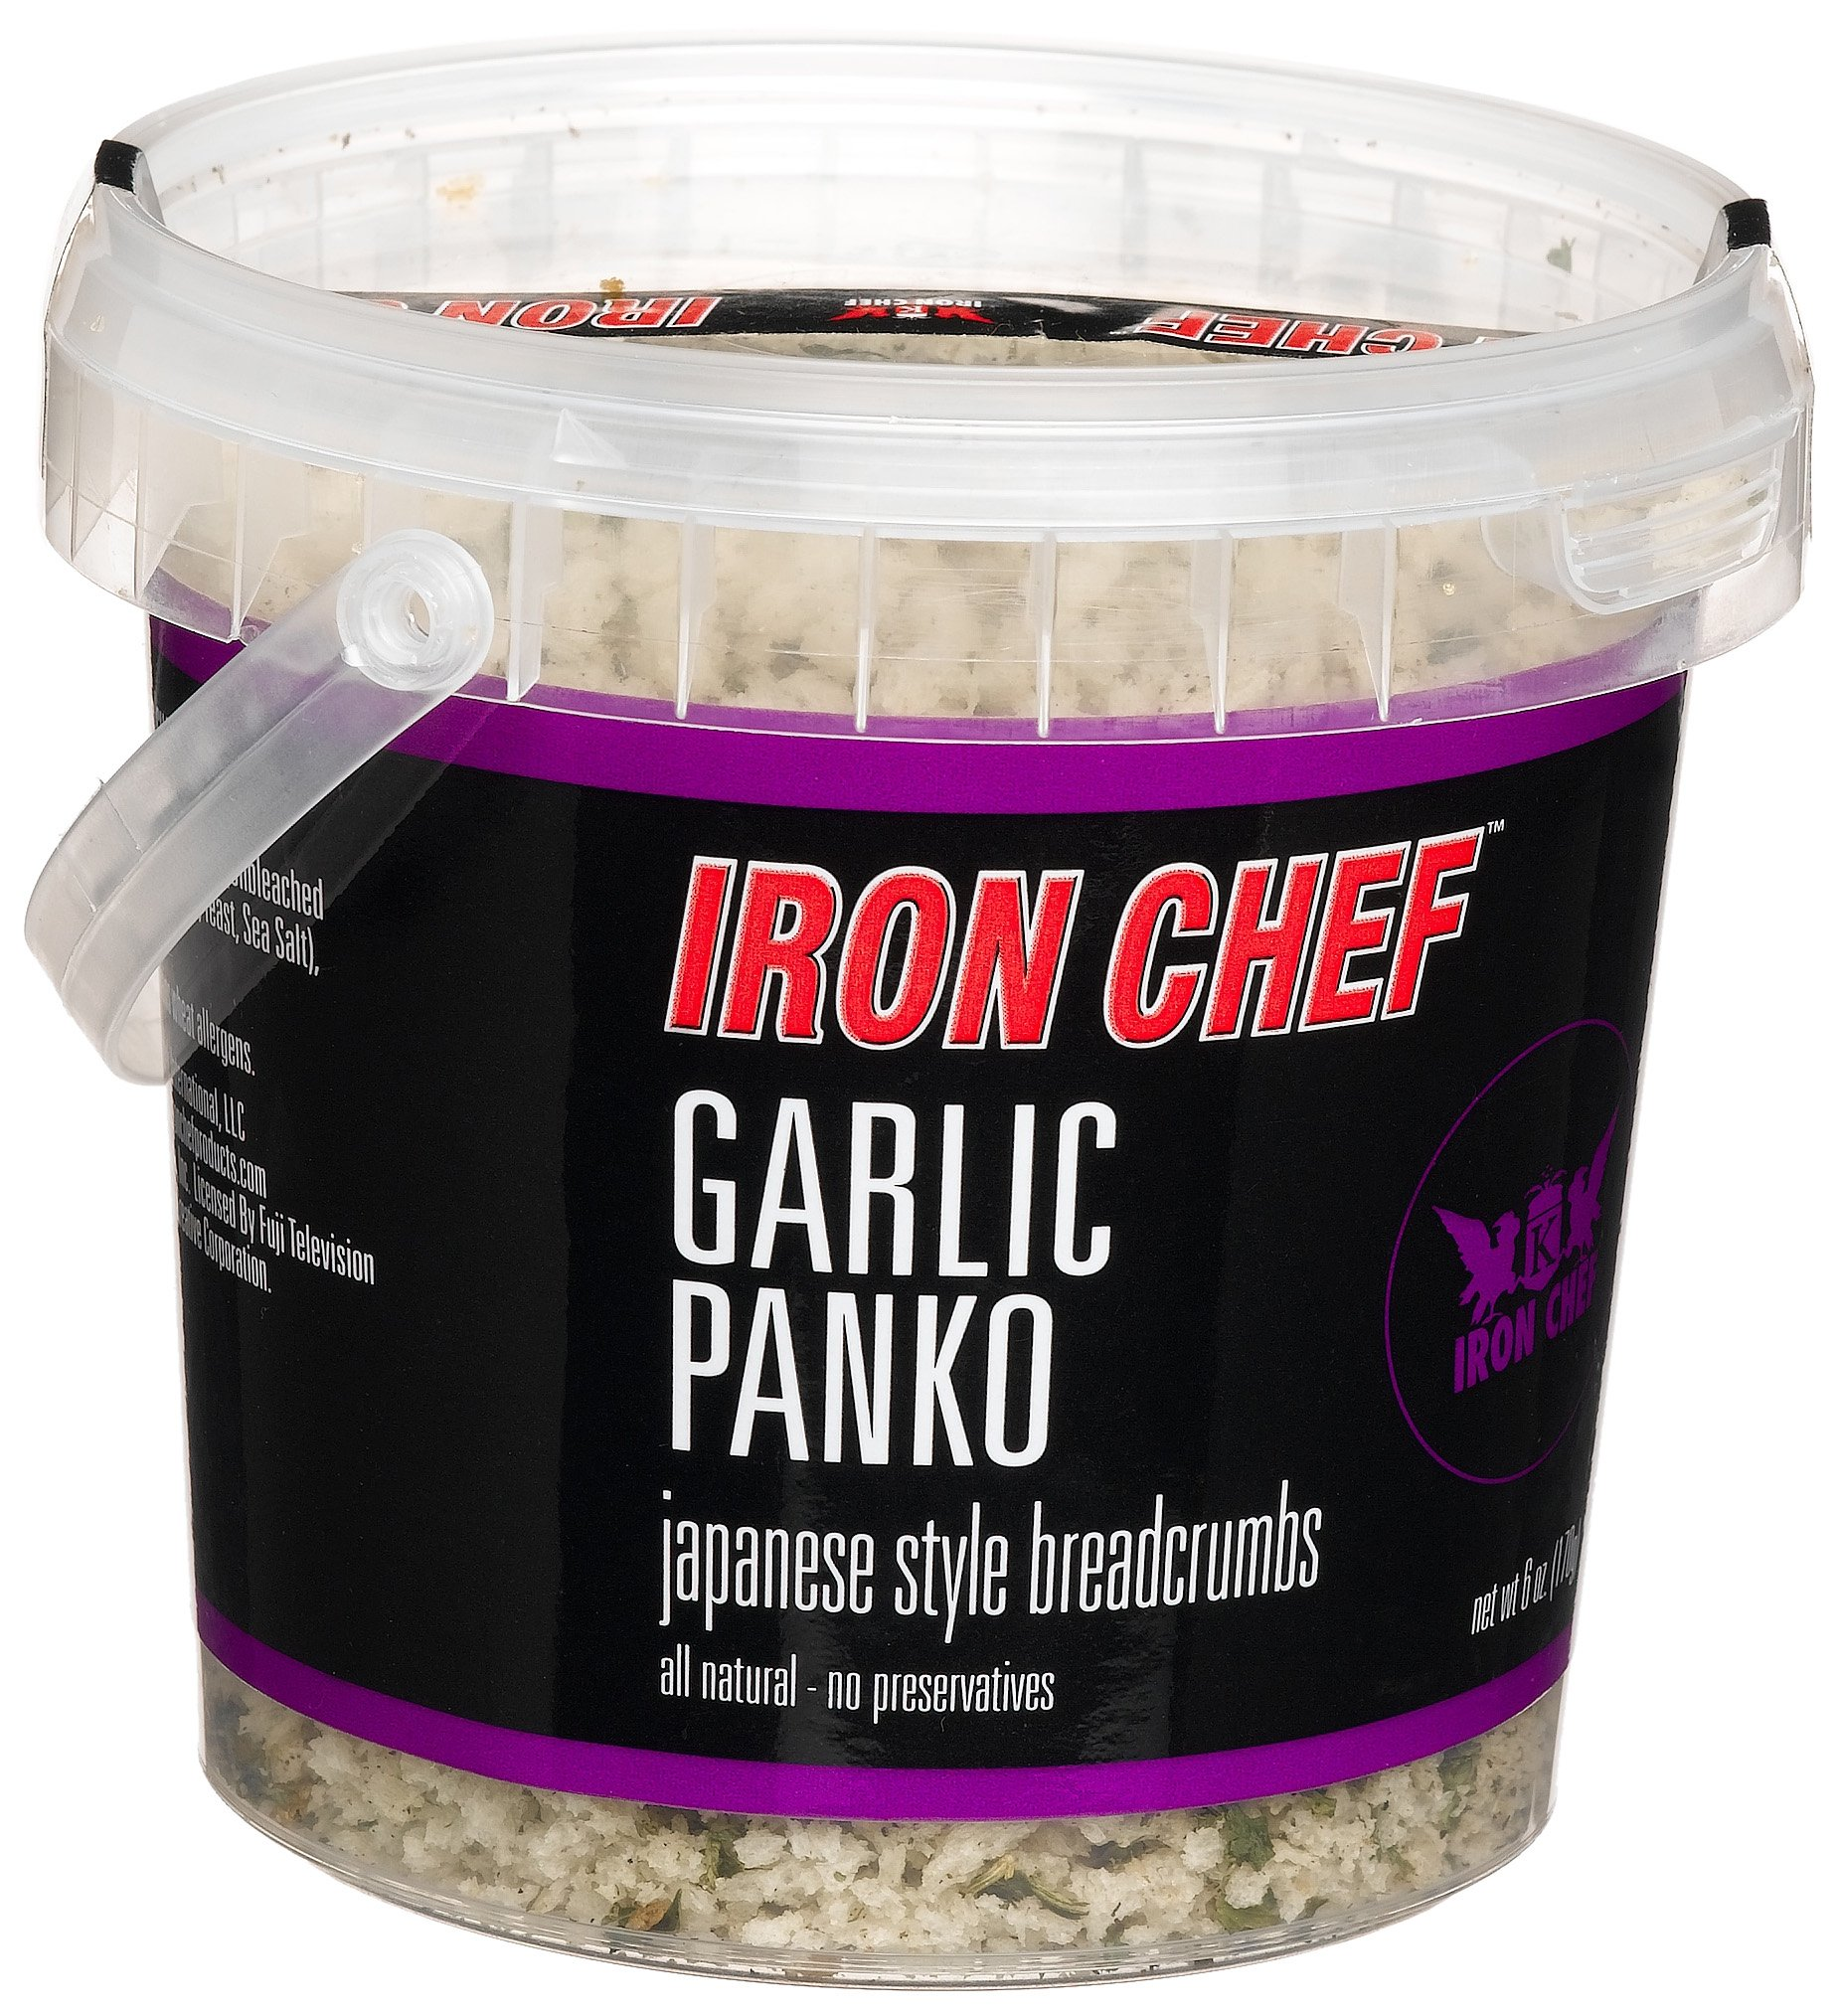 IRON CHEF Garlic Flavored Panko, Certified Kosher, 6-Ounce Buckets (Pack of 3) by Iron Chef (Image #1)